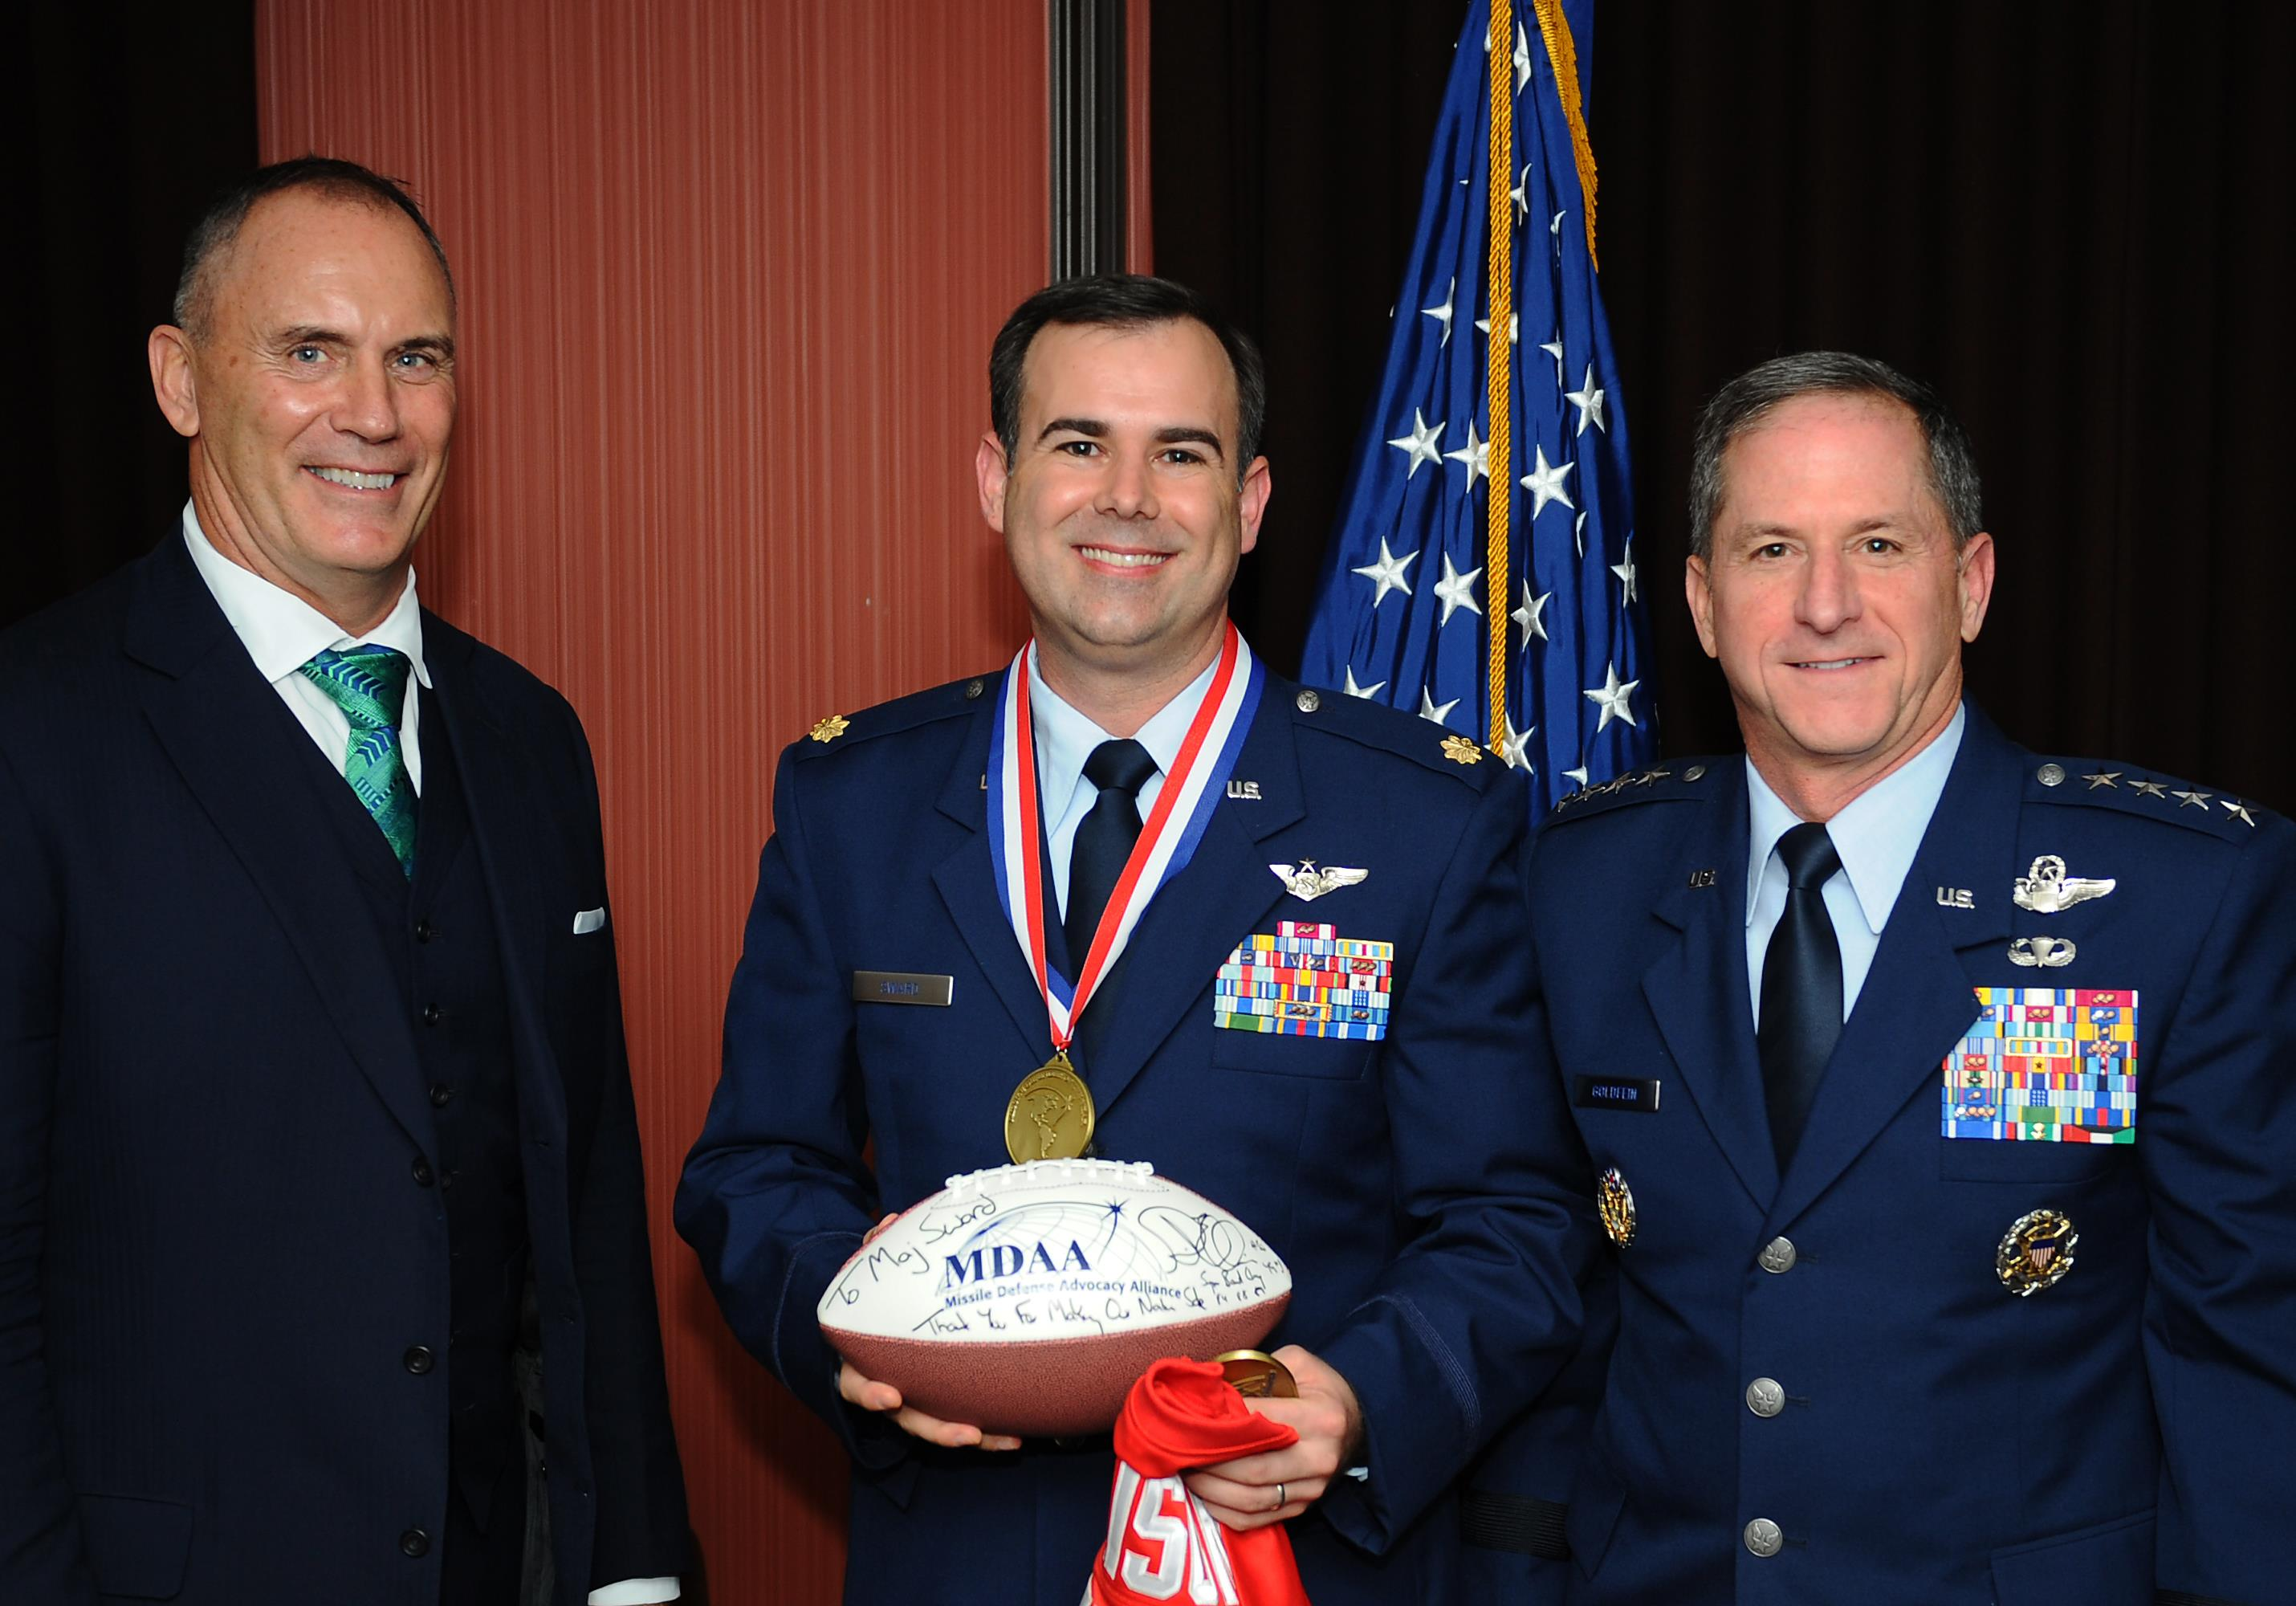 mdaa  MDAA recognizes Air Force Missile Defender of the Year > U.S. Air ...